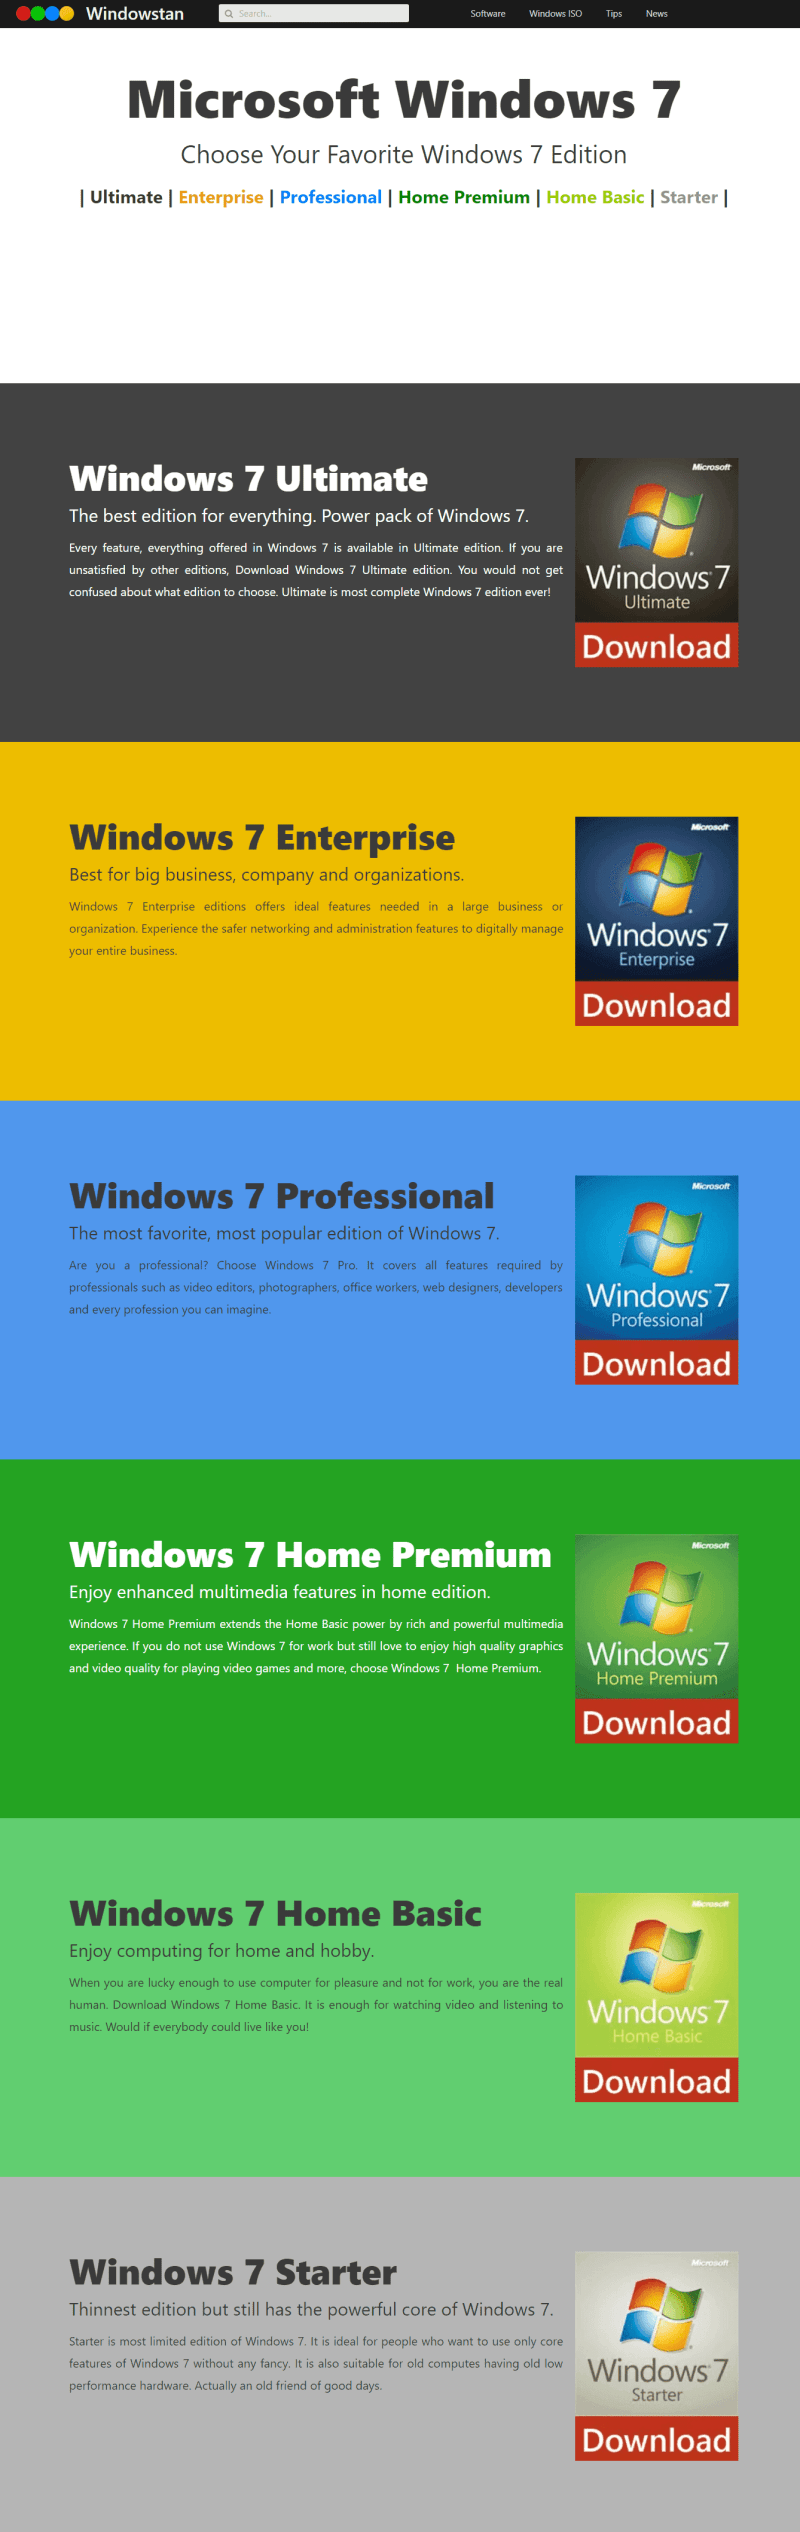 Windows 7 Editions compare